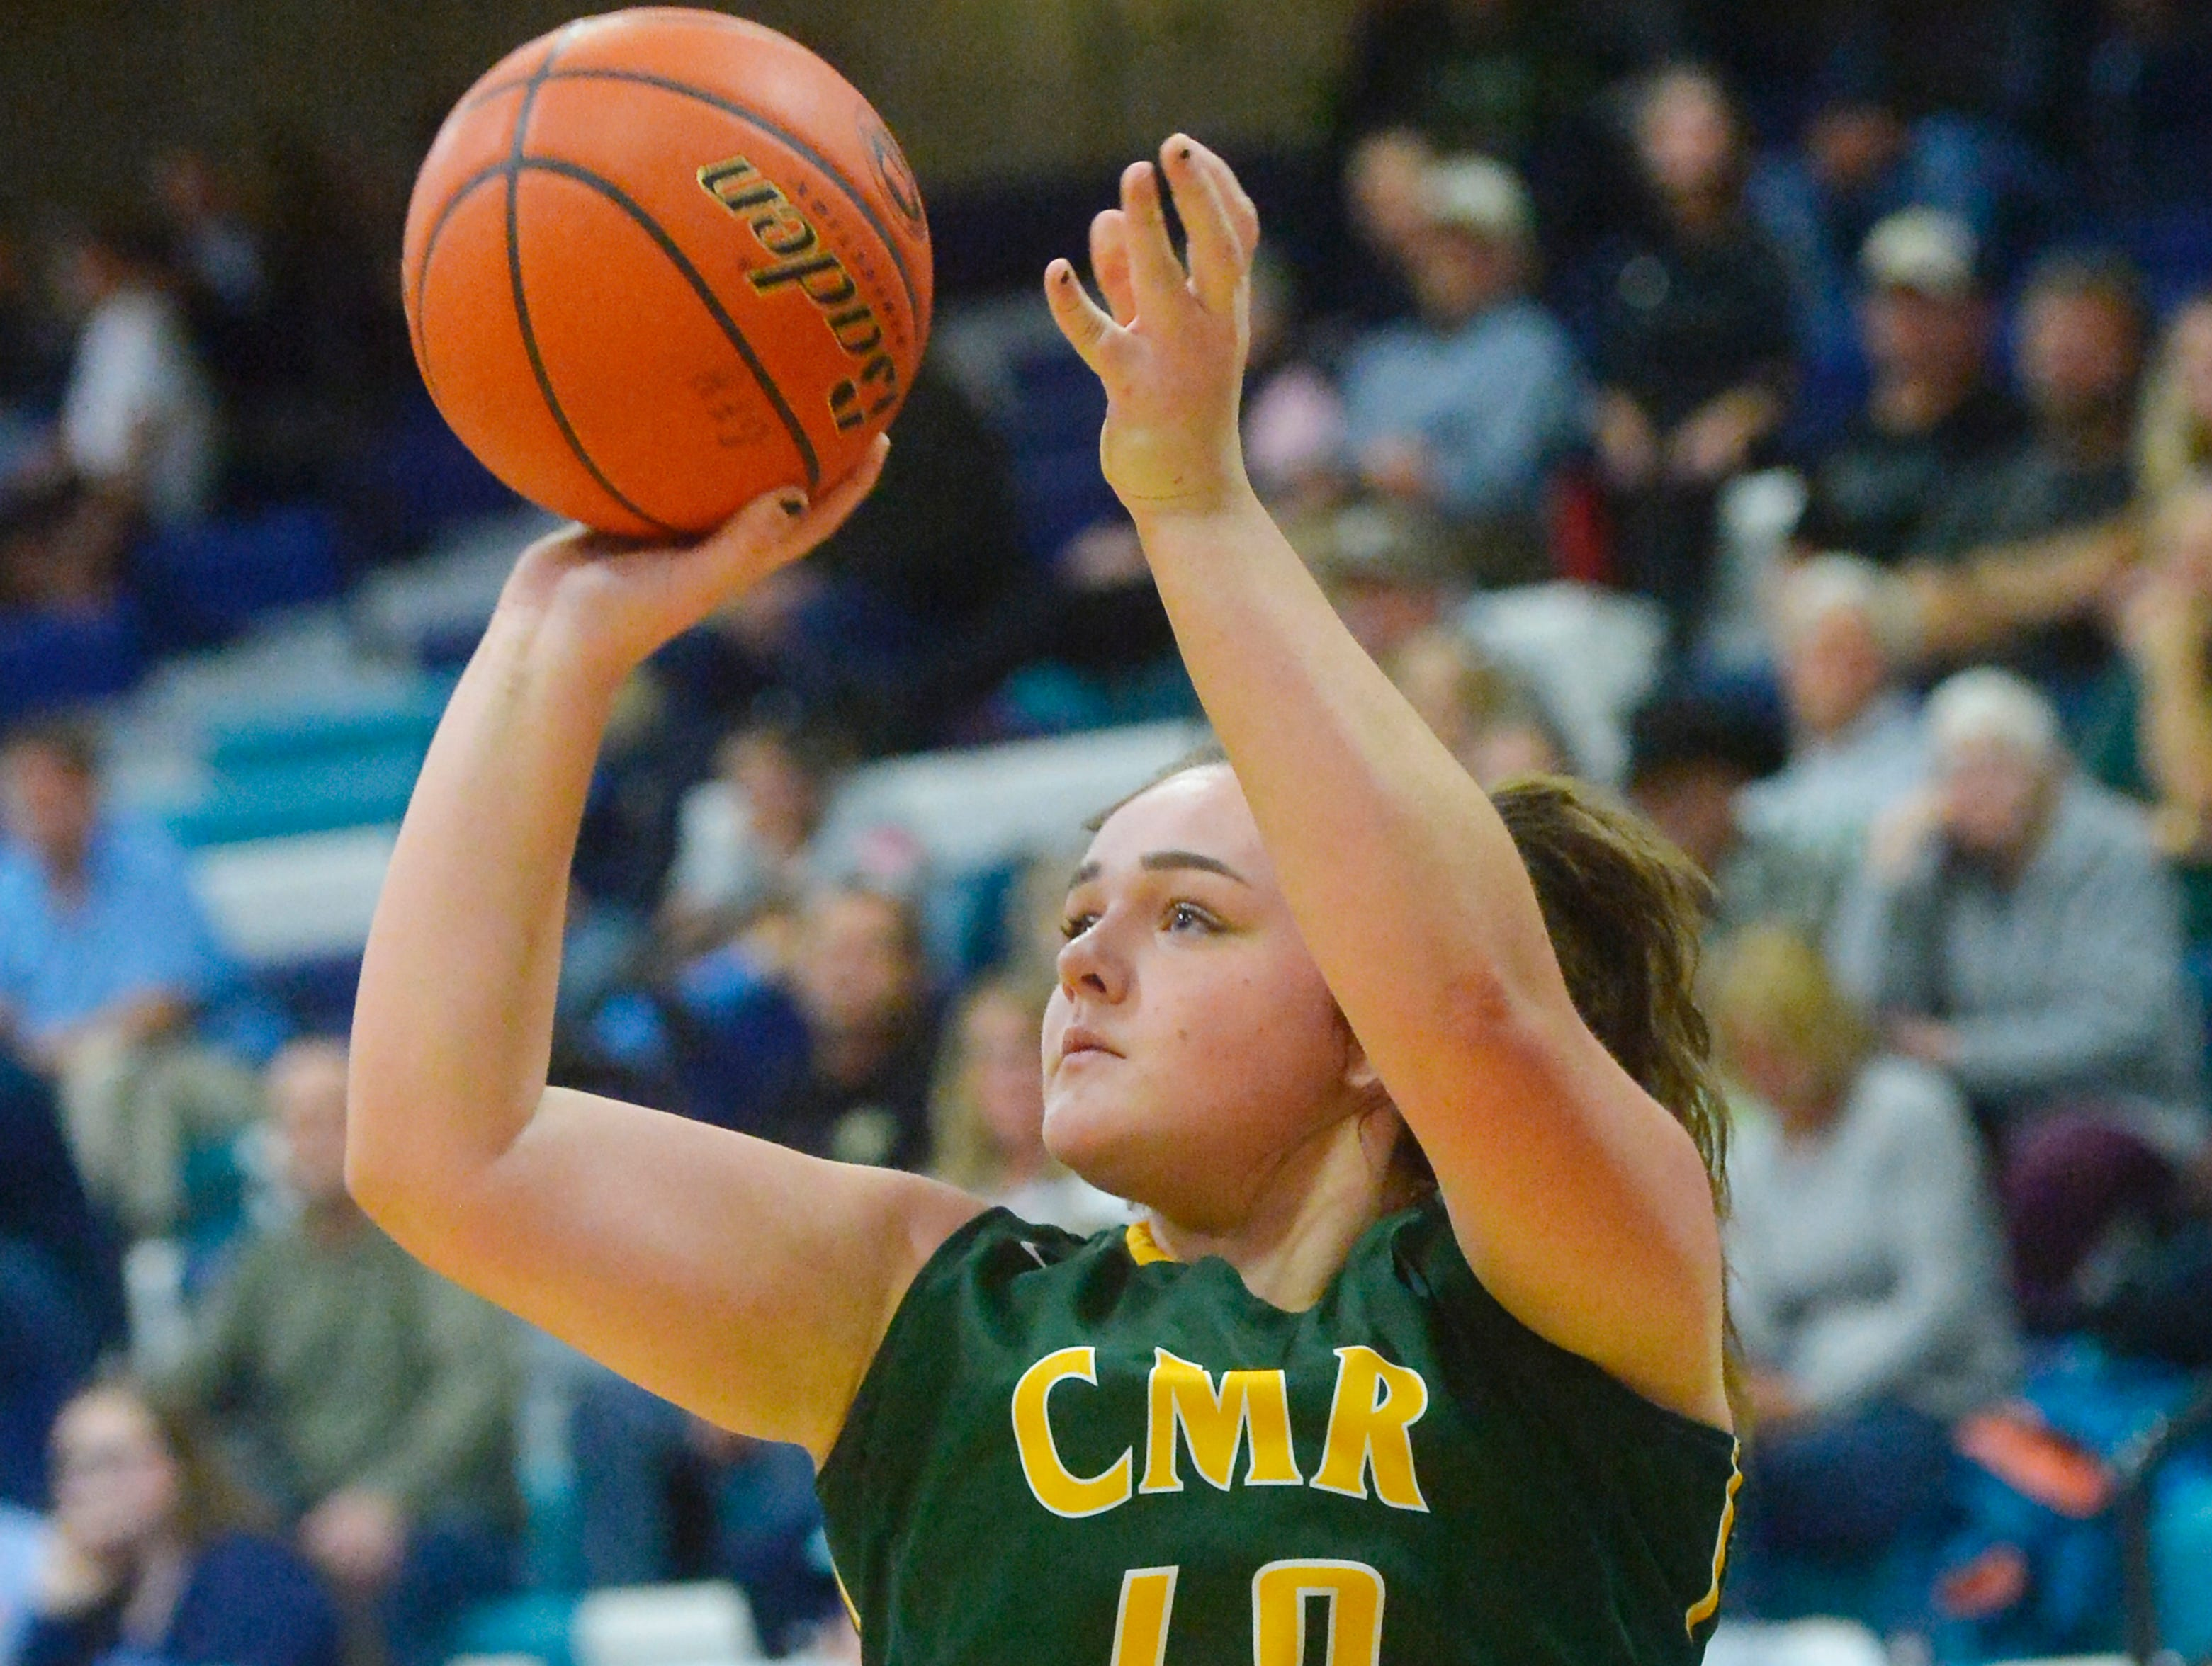 CMR's Marley Calliham shoots from the outside during the crosstown basketball game, Tuesday night in the Swarthout Fieldhouse.